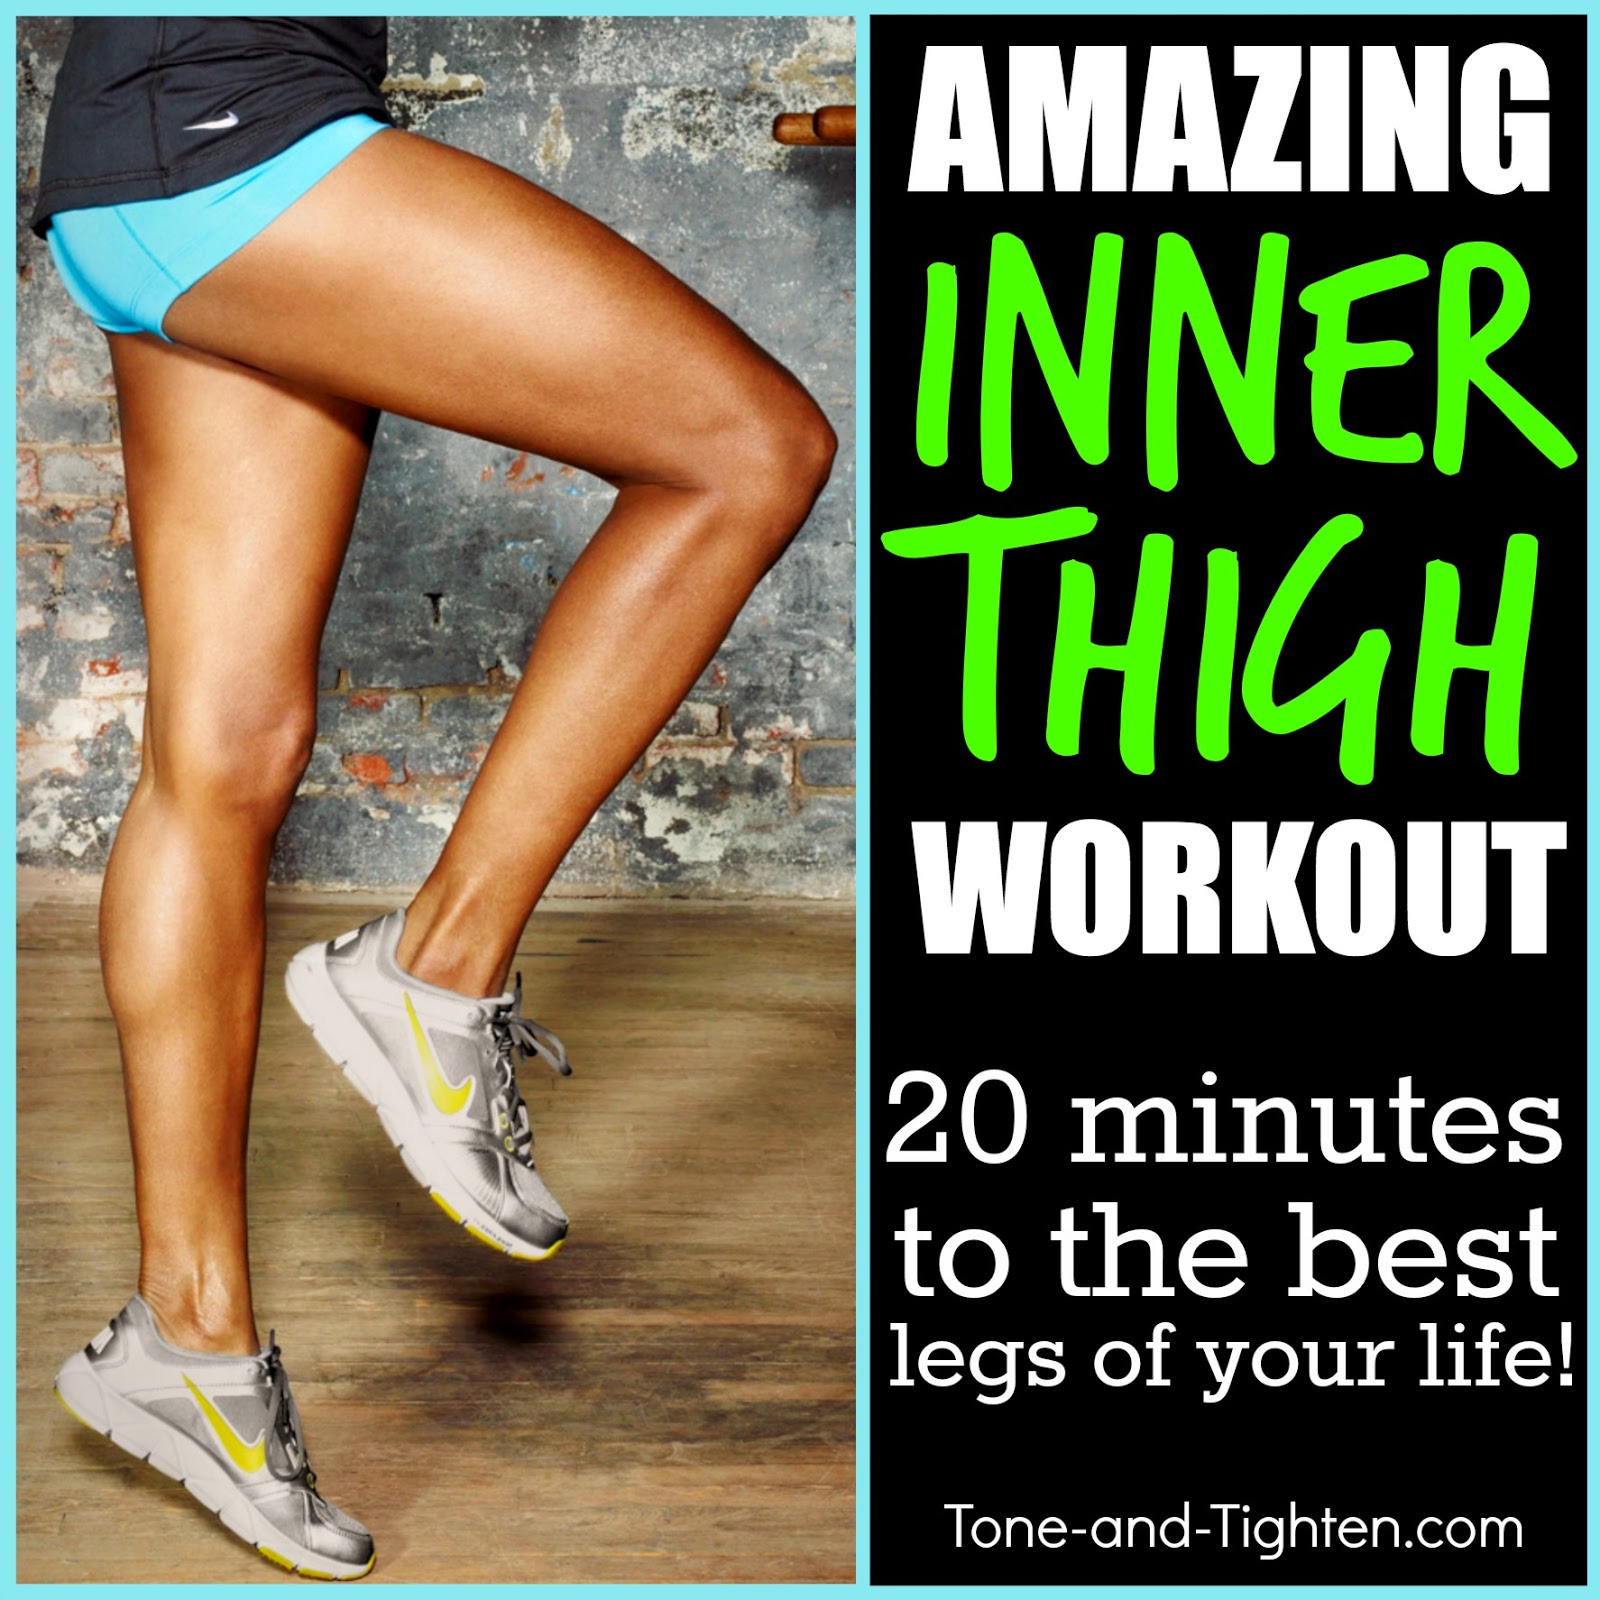 http://tone-and-tighten.com/2014/05/amazing-inner-thigh-workout-the-best-moves-to-shape-your-thighs.html